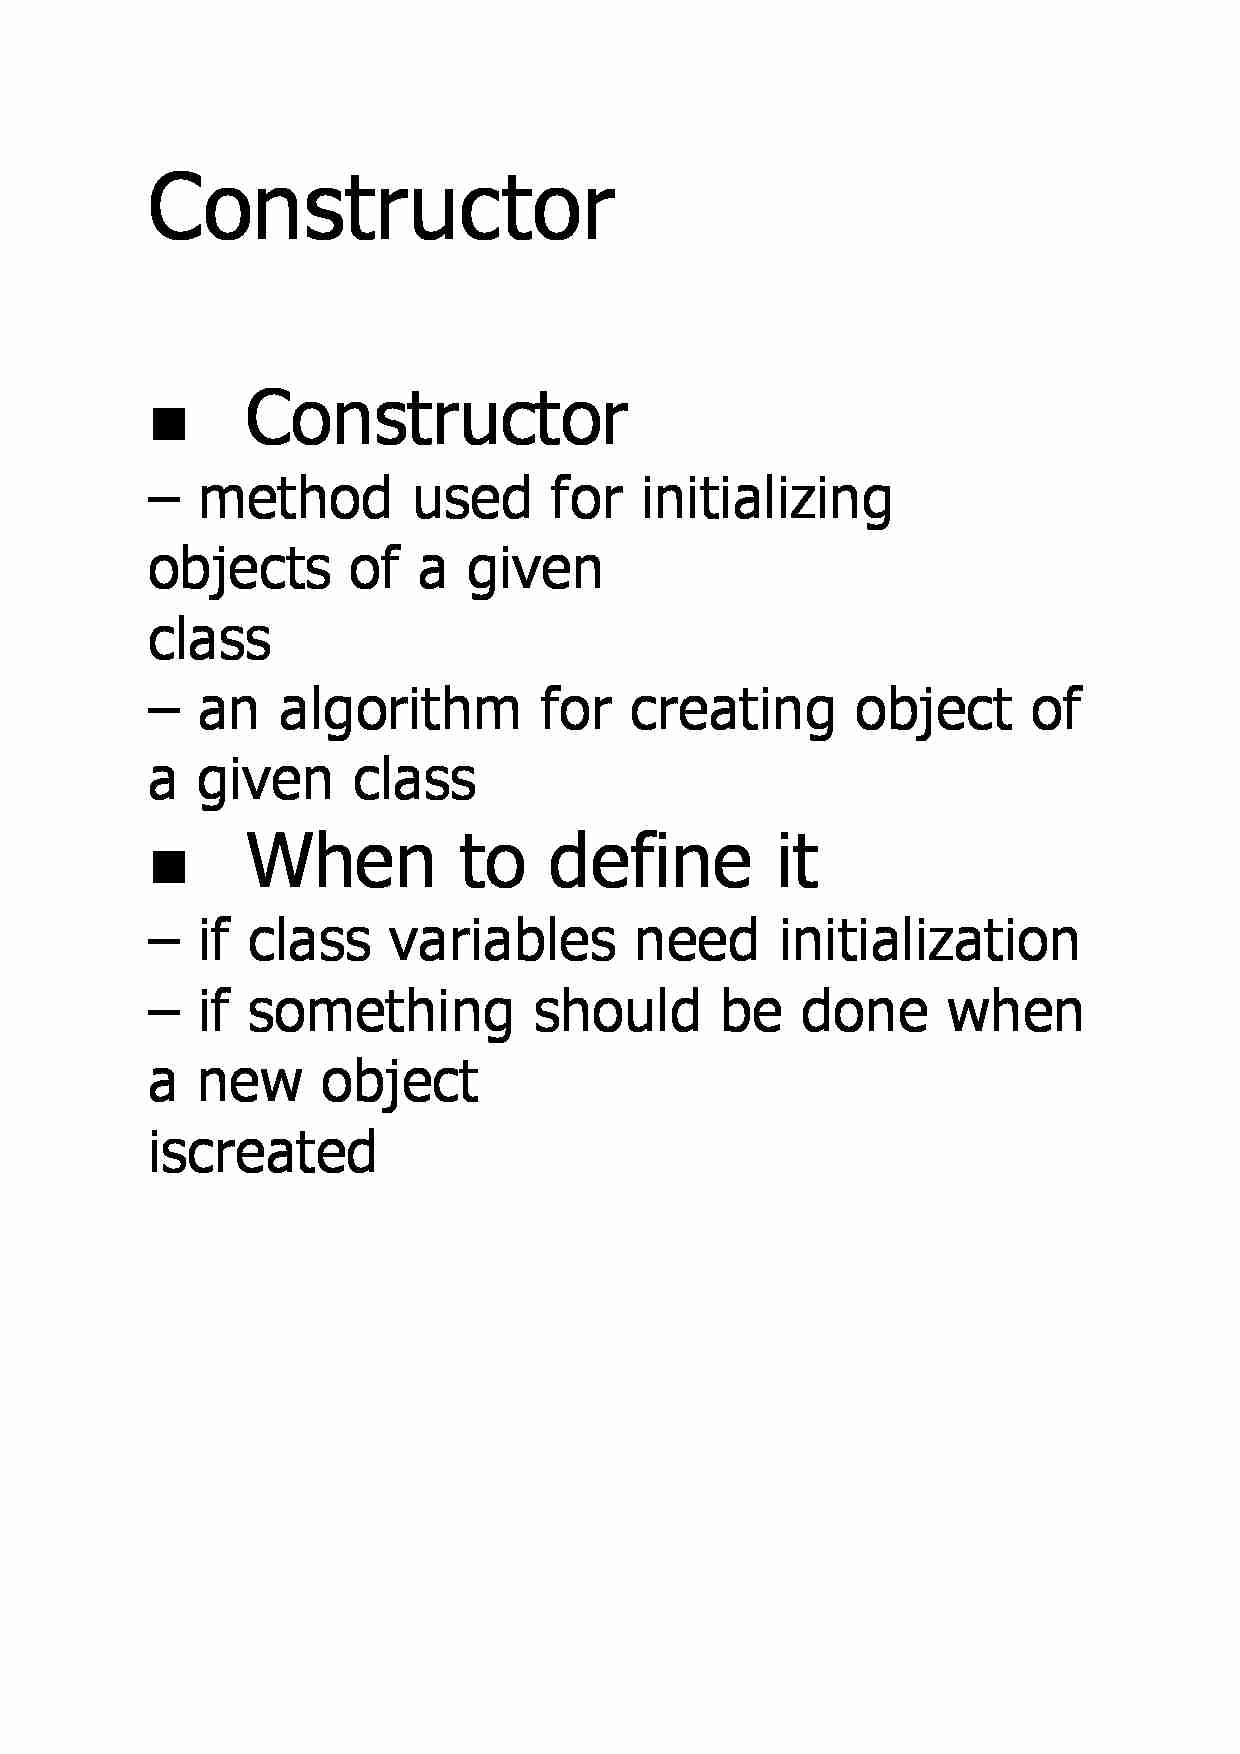 Constructor - When to define it - strona 1